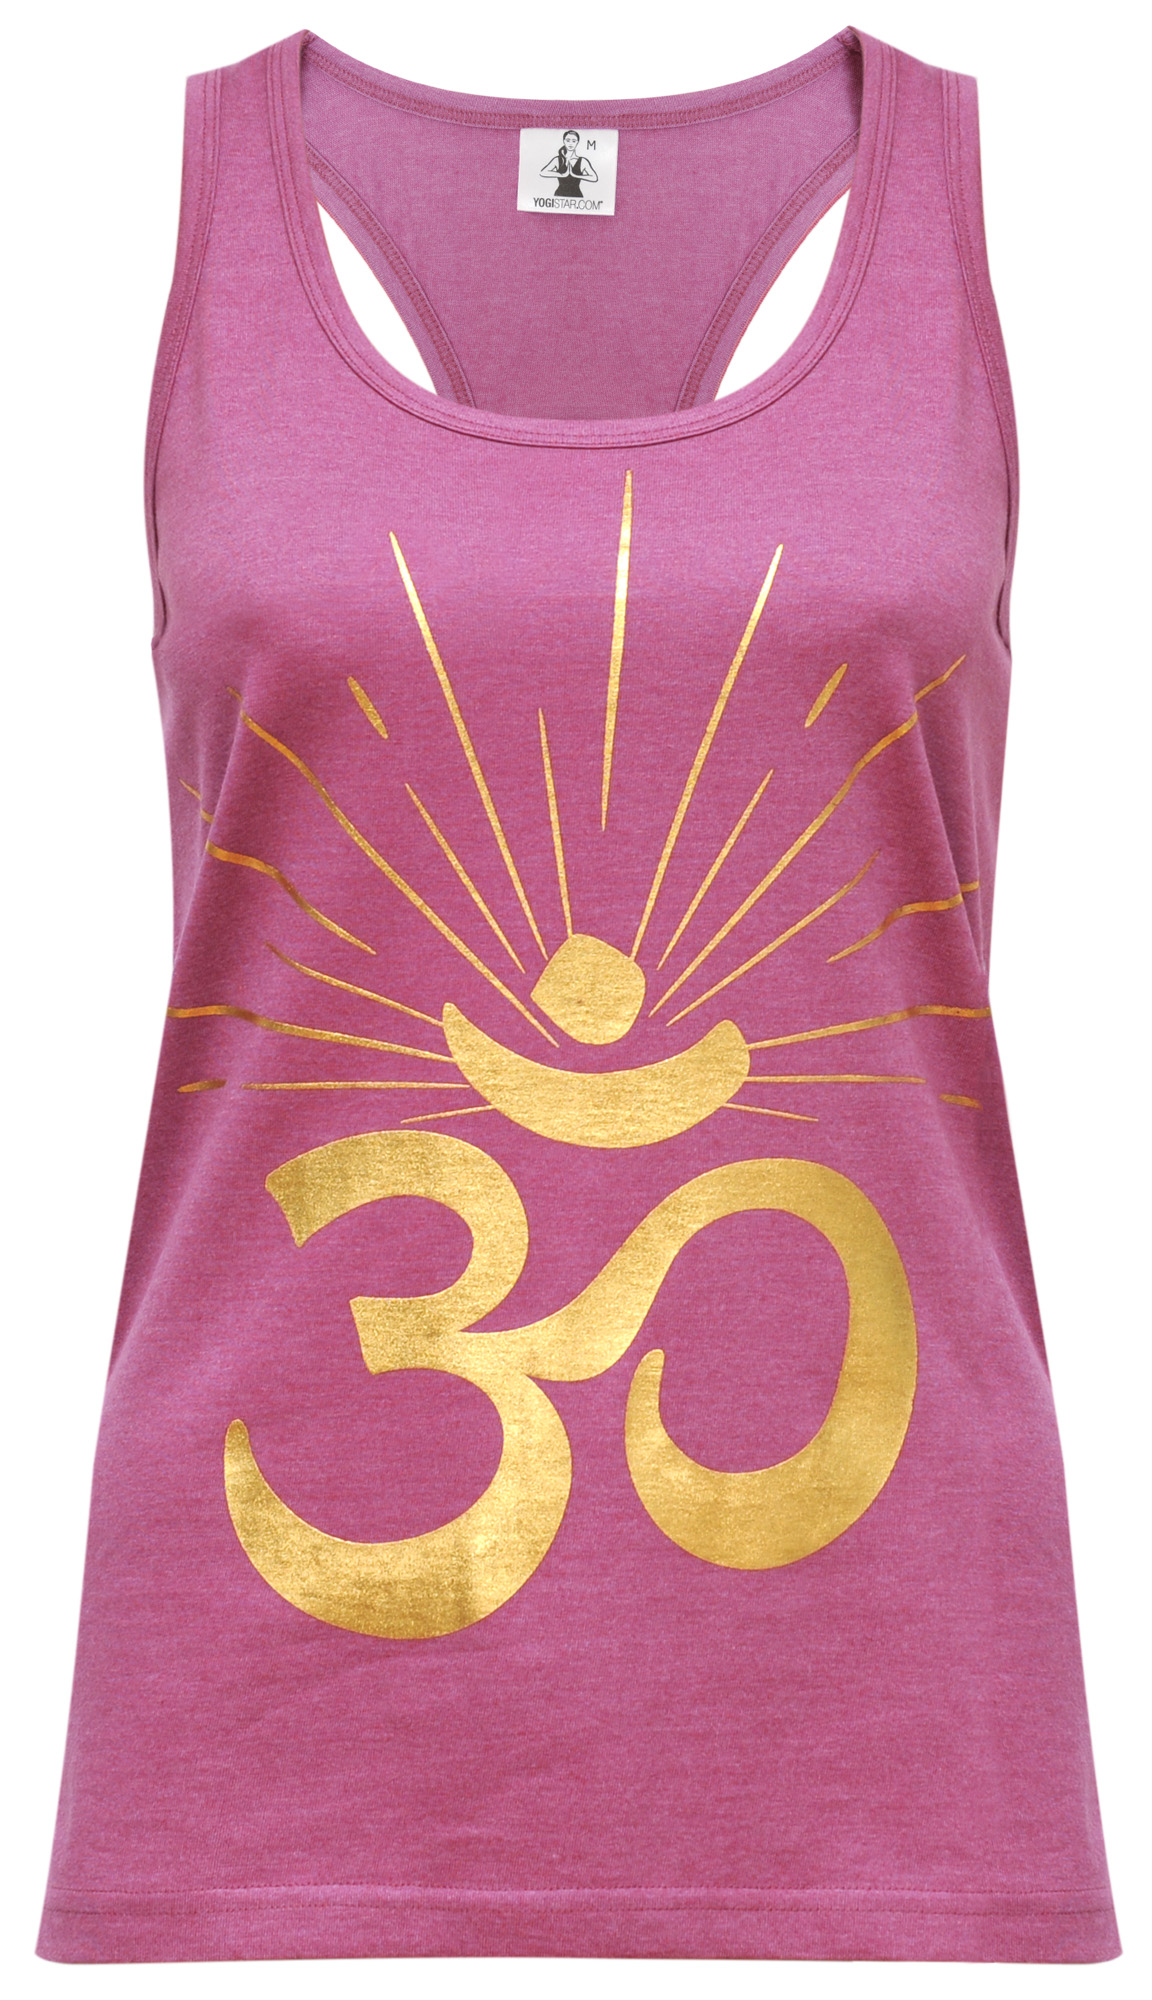 "Yoga-Racerback-Top ""OM sunray"" - rosewine/gold"